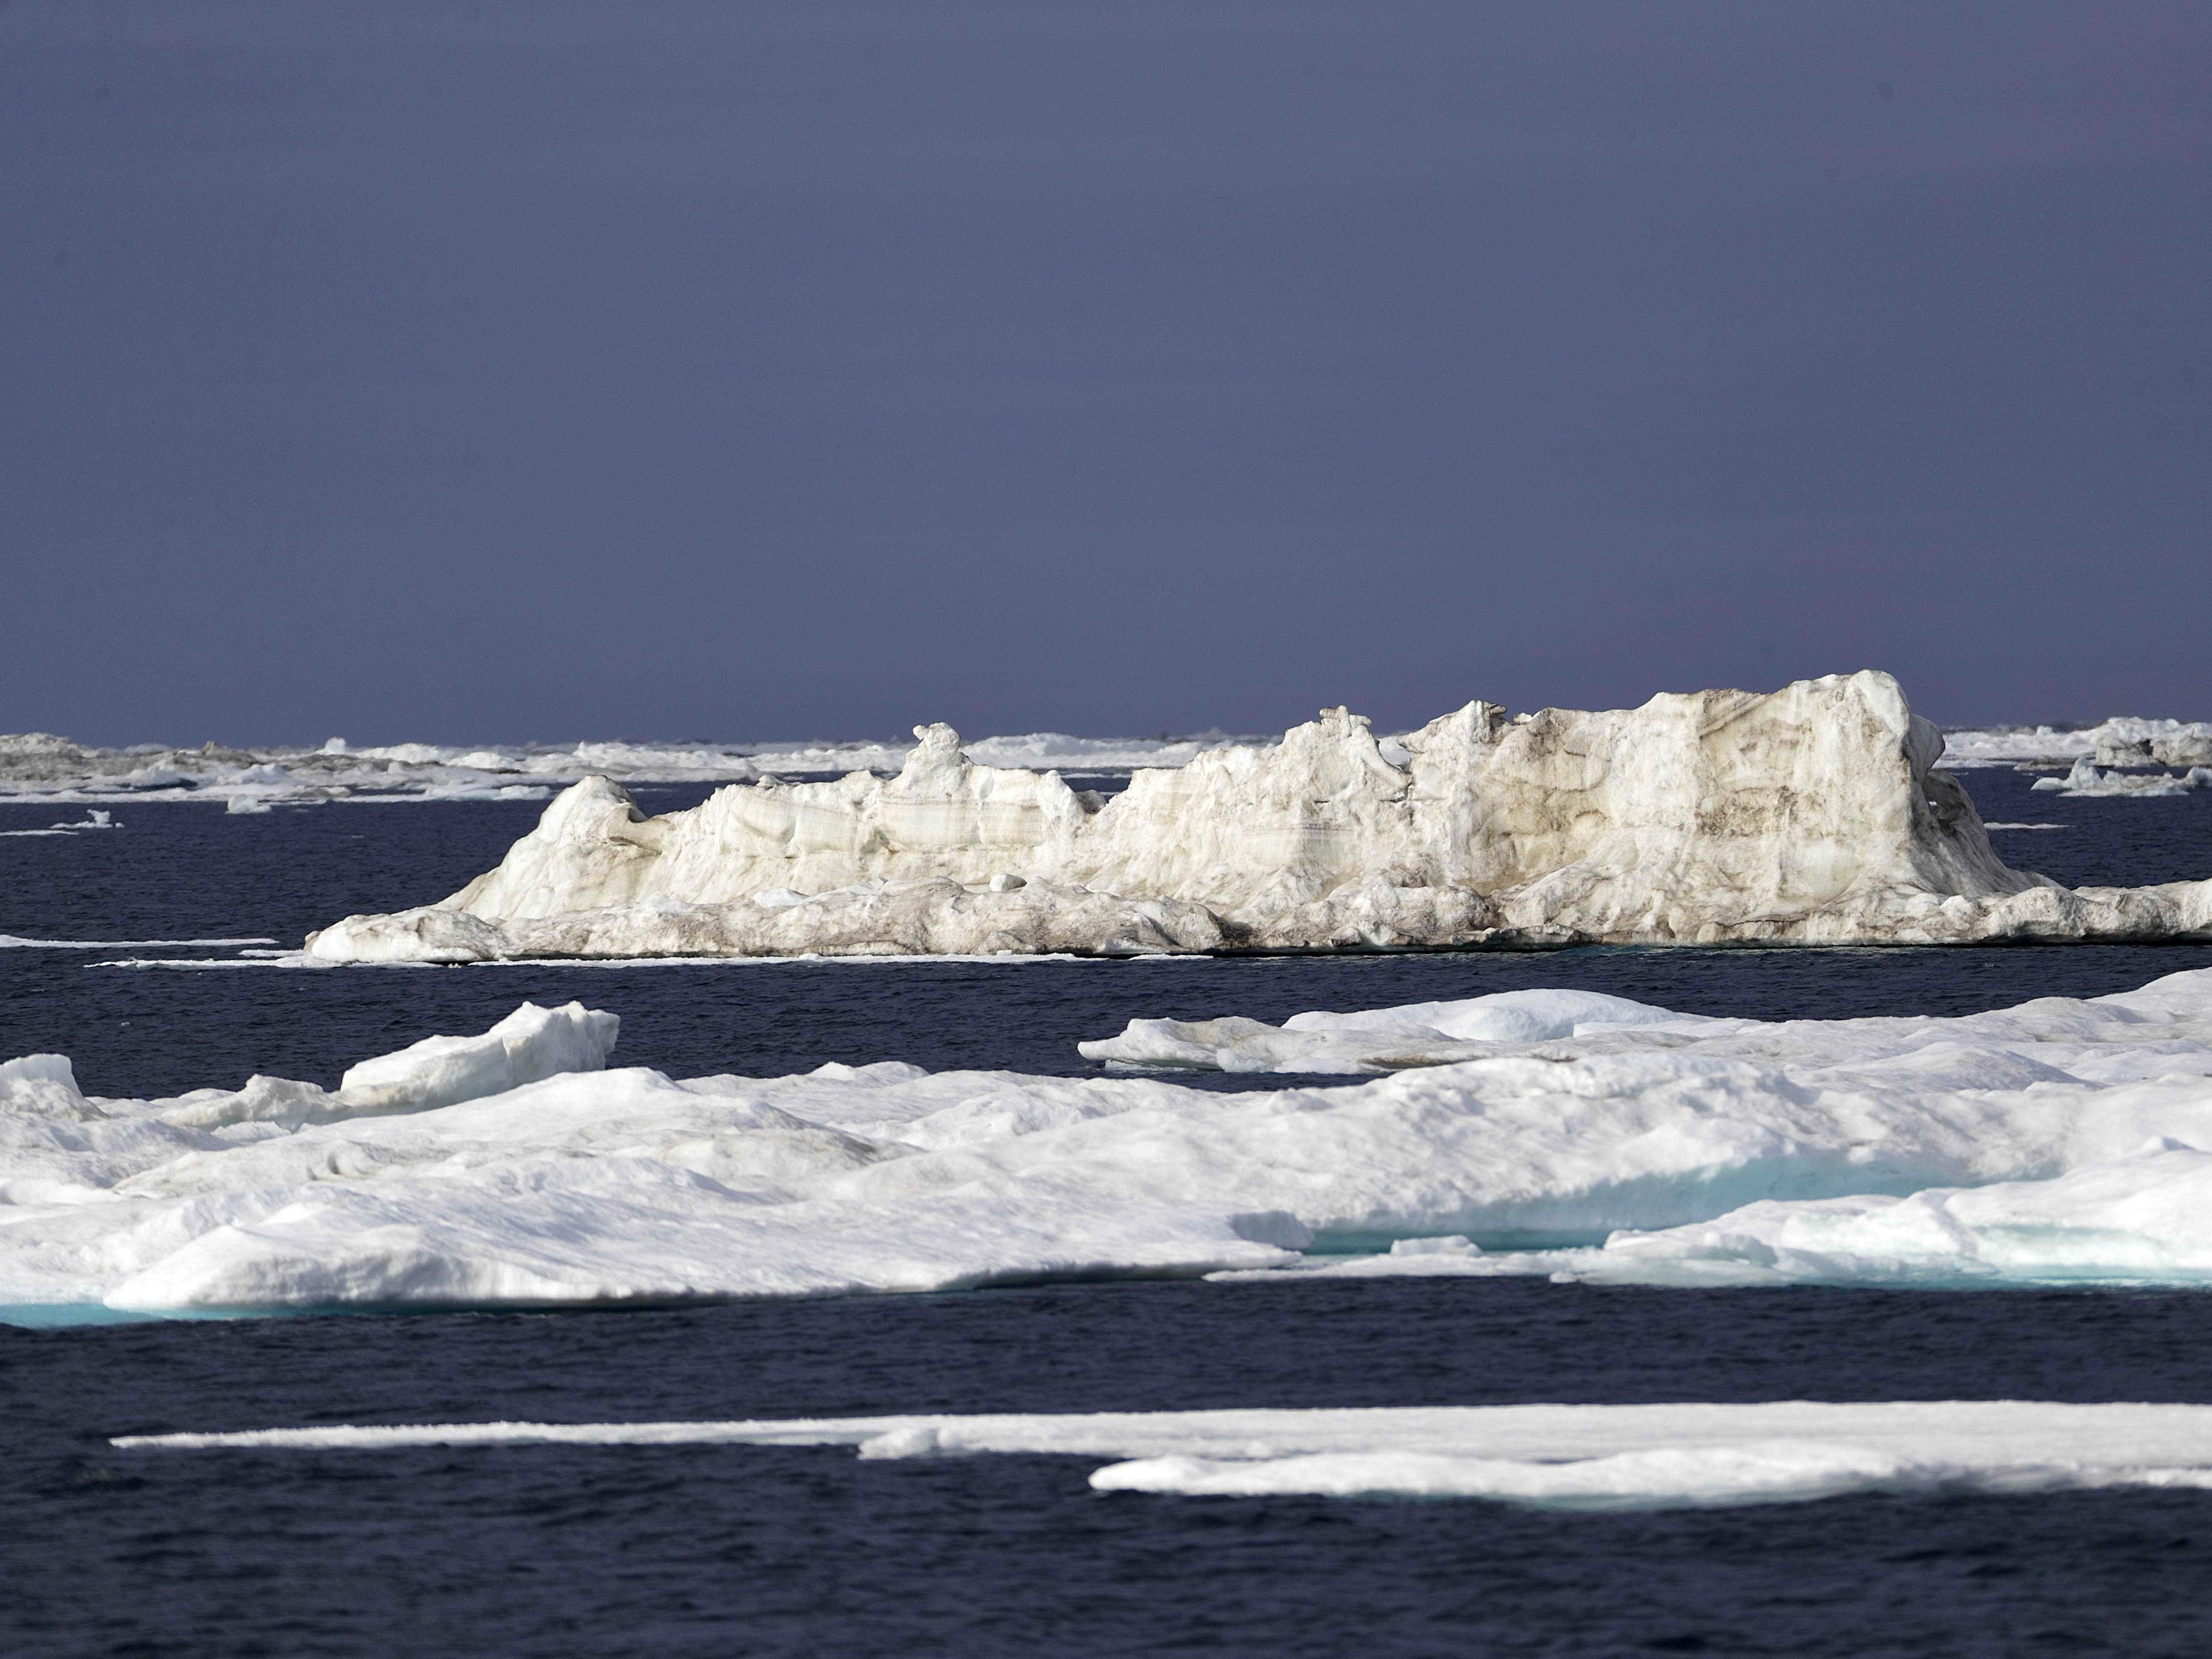 Climate Change Slows Oil Company Plan To Drill In The Arctic